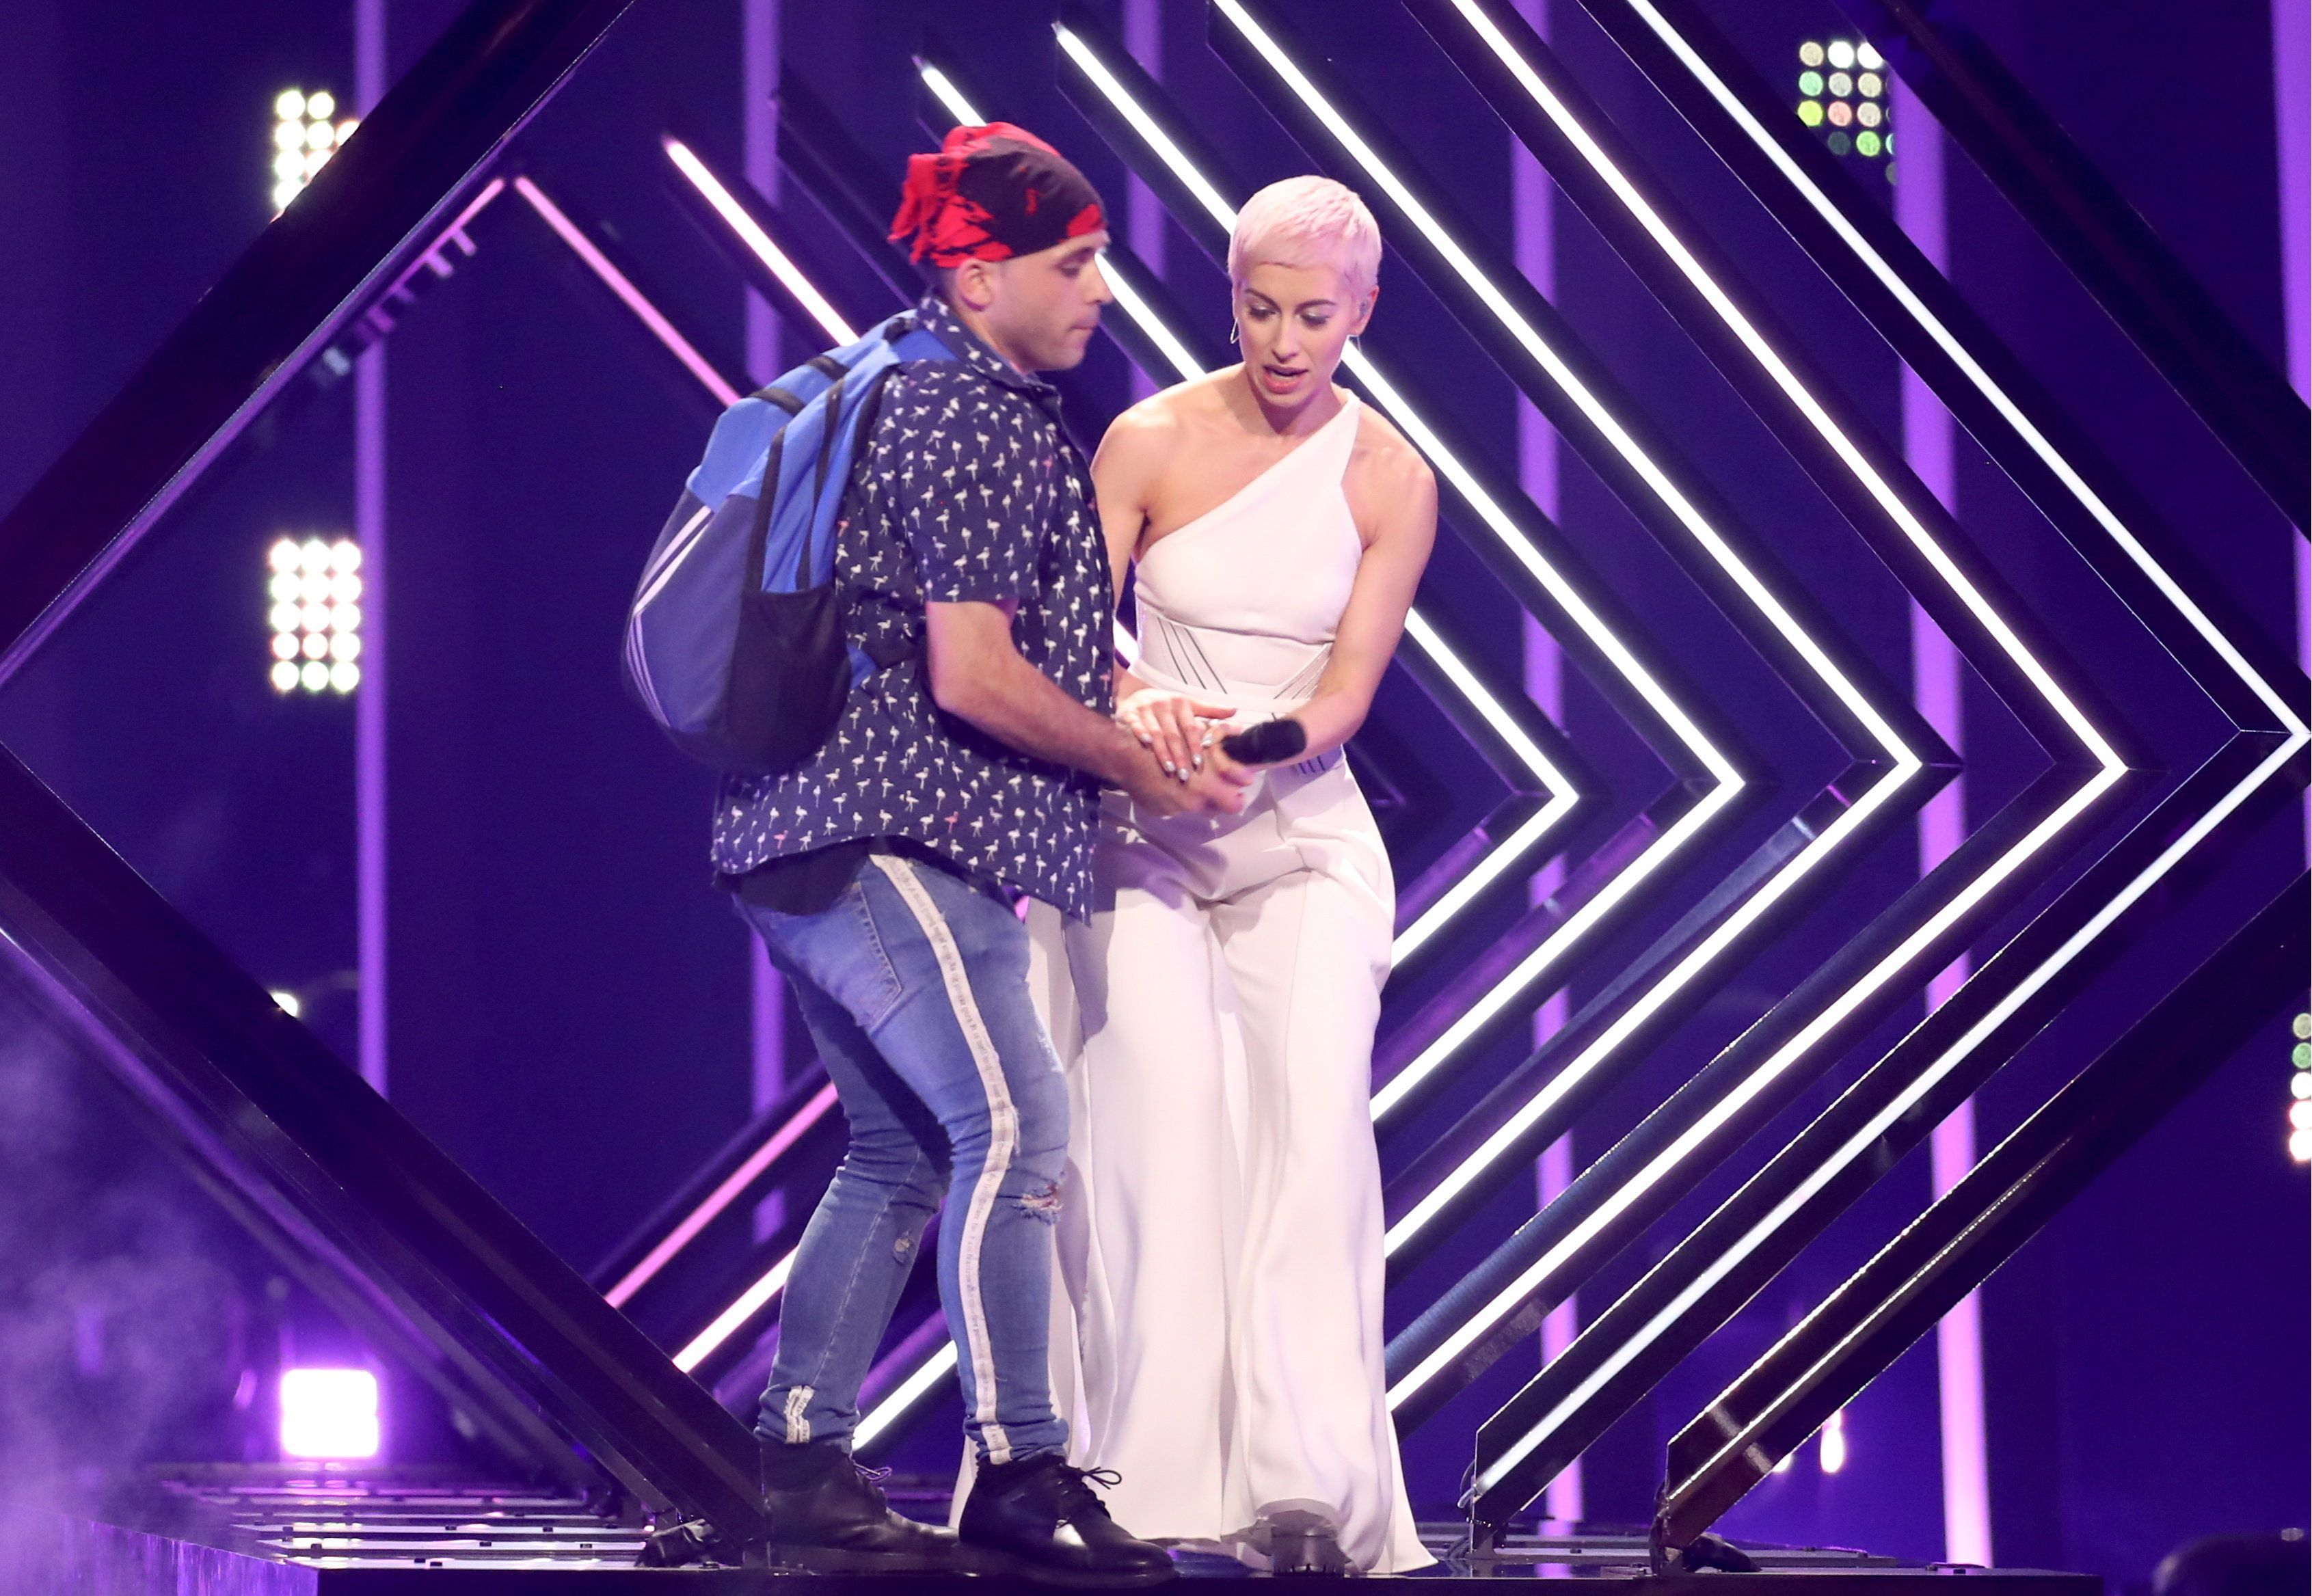 Vyacheslav Prokofyev via Getty Images                   SuRie's performance was interrupted by a stage invader